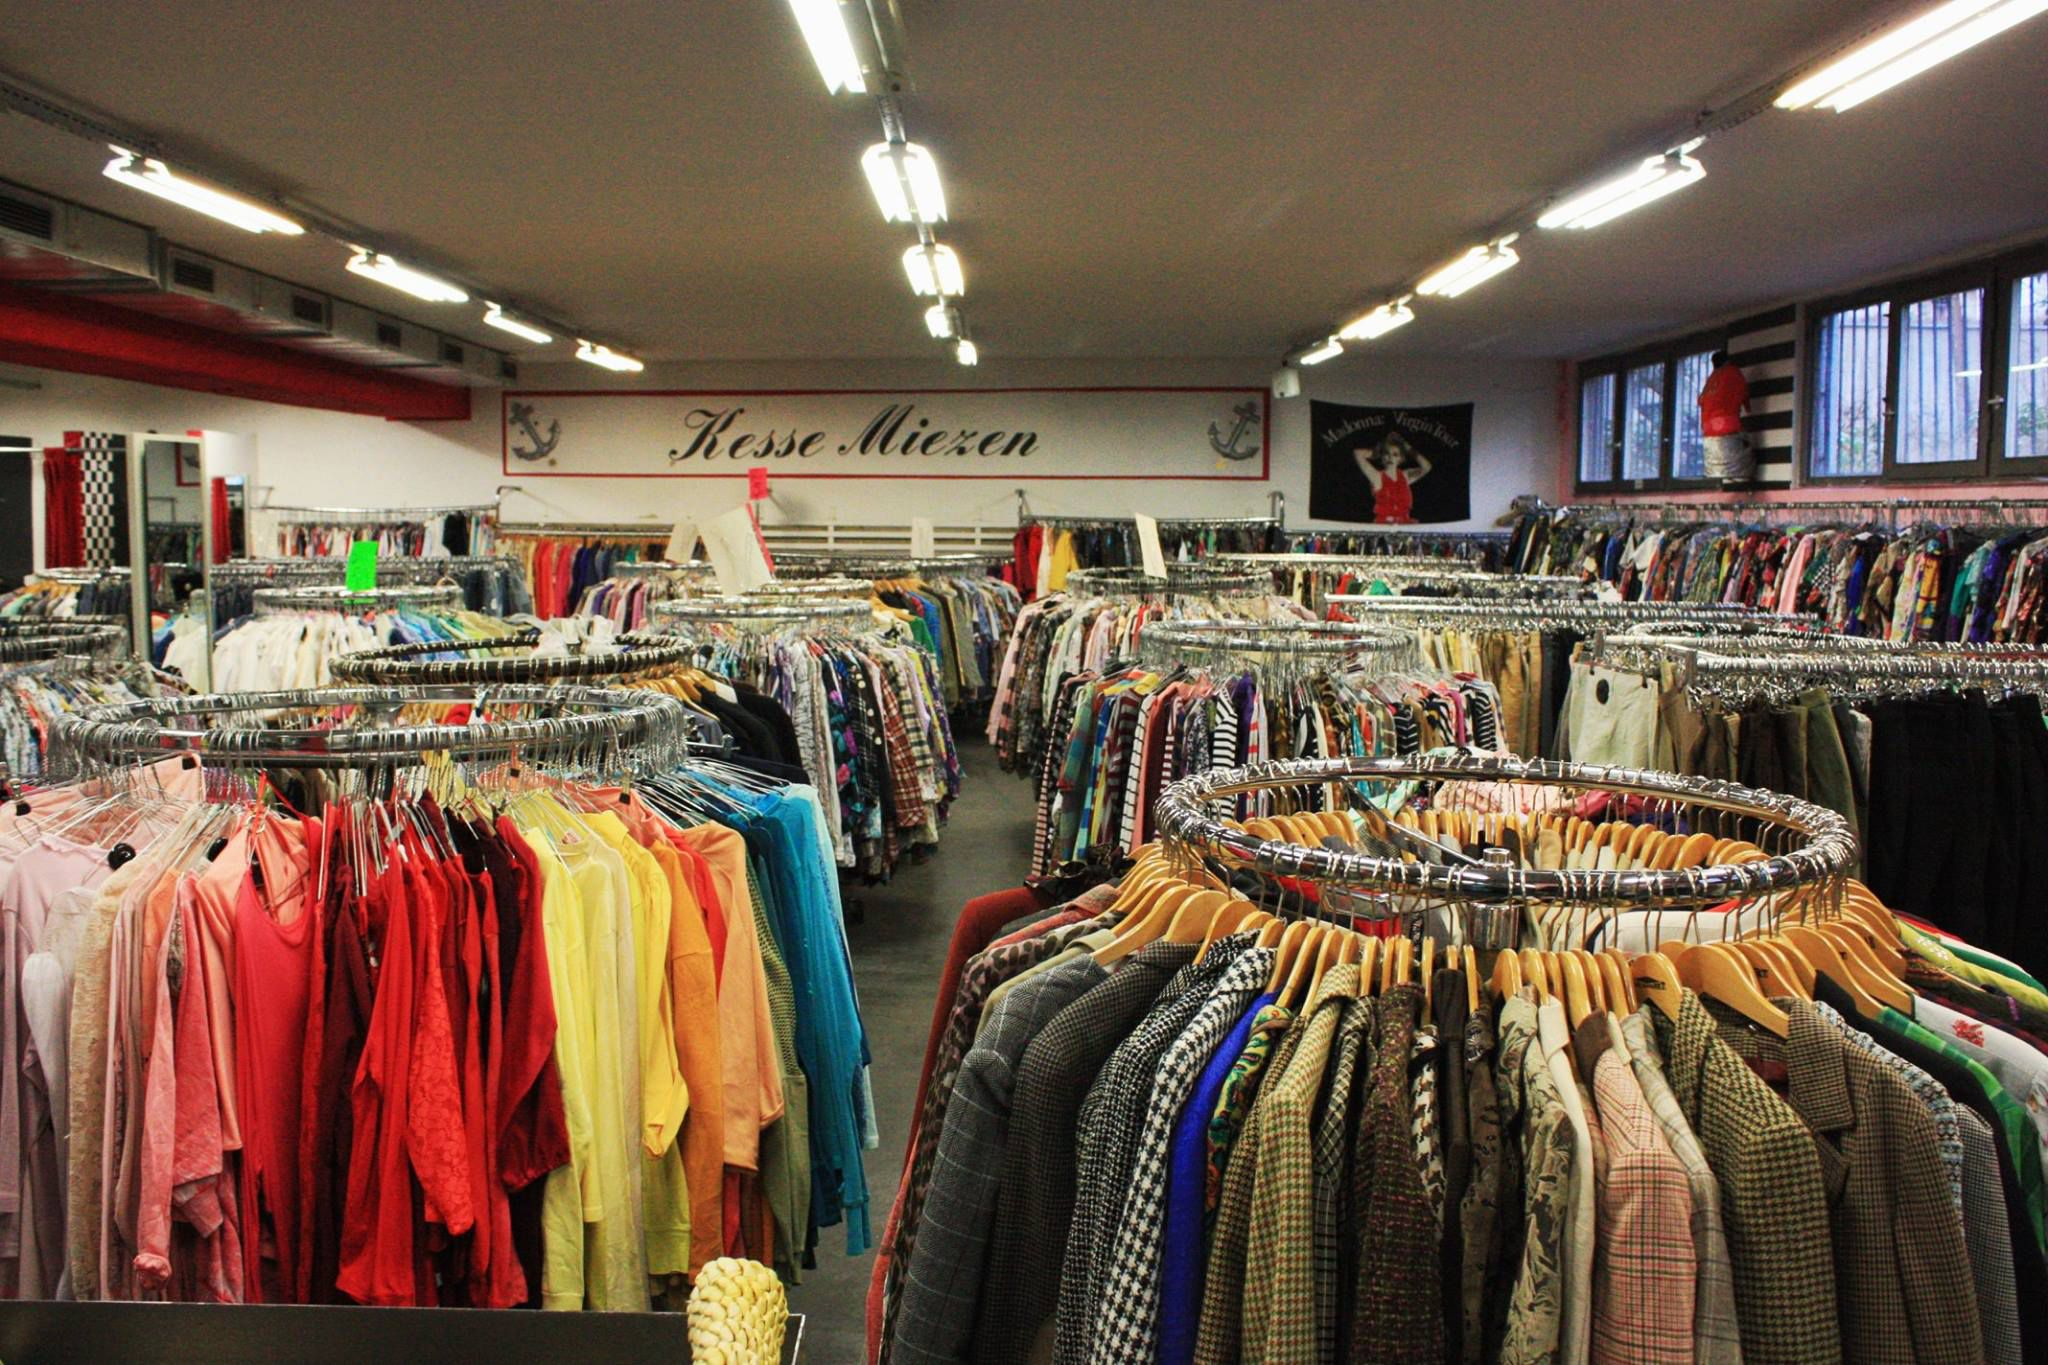 cca7ab4f7 The 12 Best Vintage Shops in Berlin